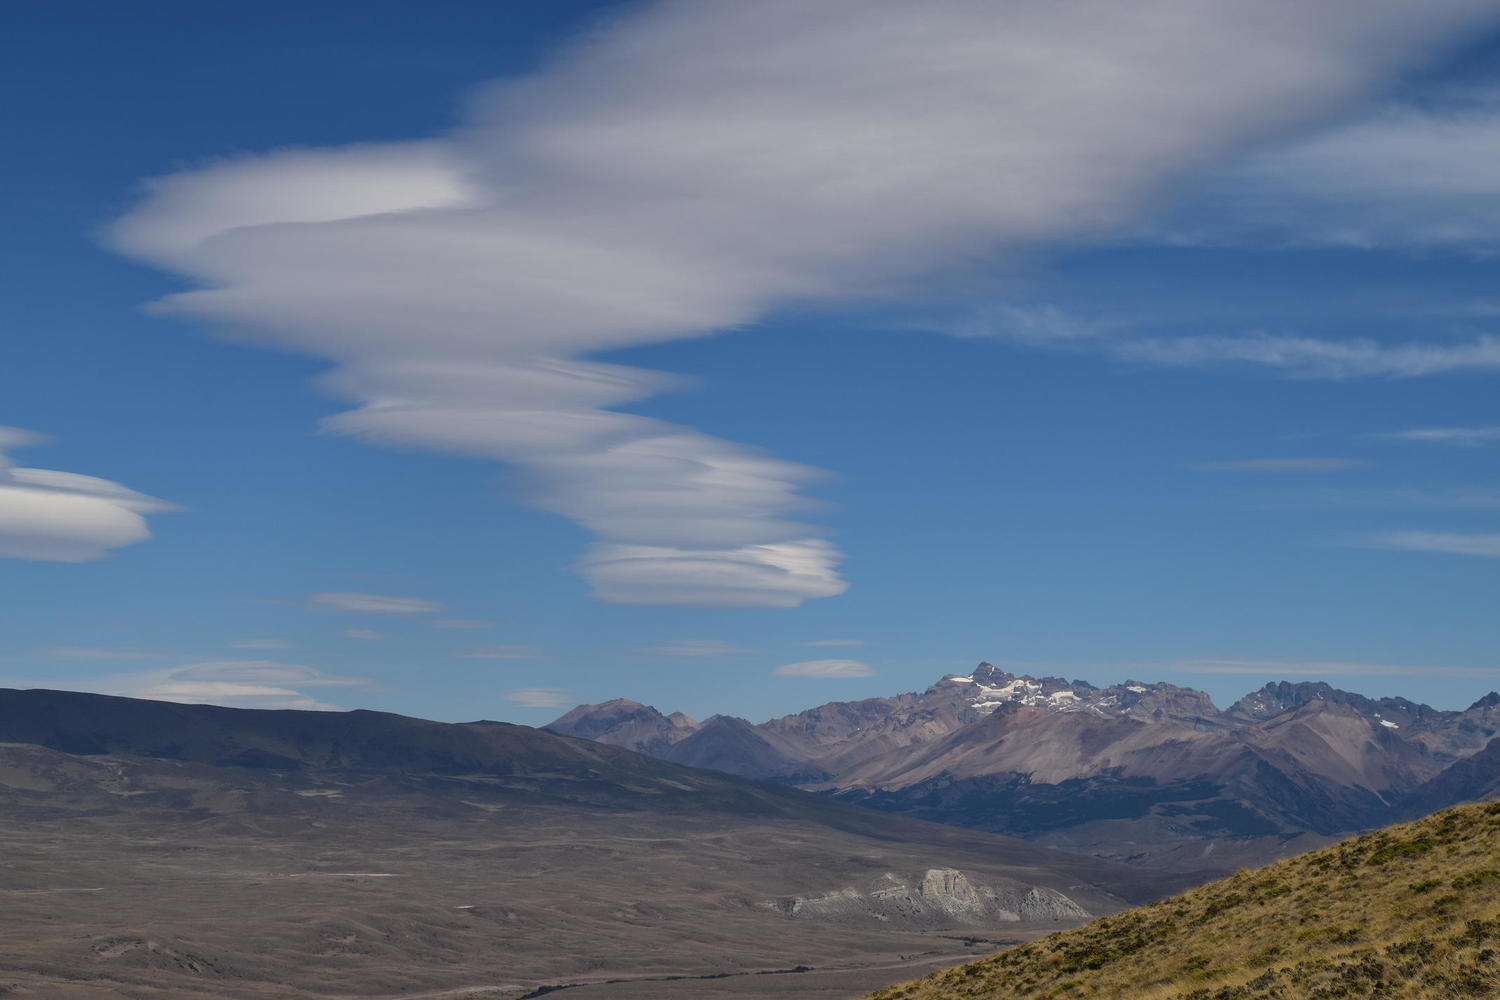 Epic Patagonian clouds at the Jeinimeni reserve